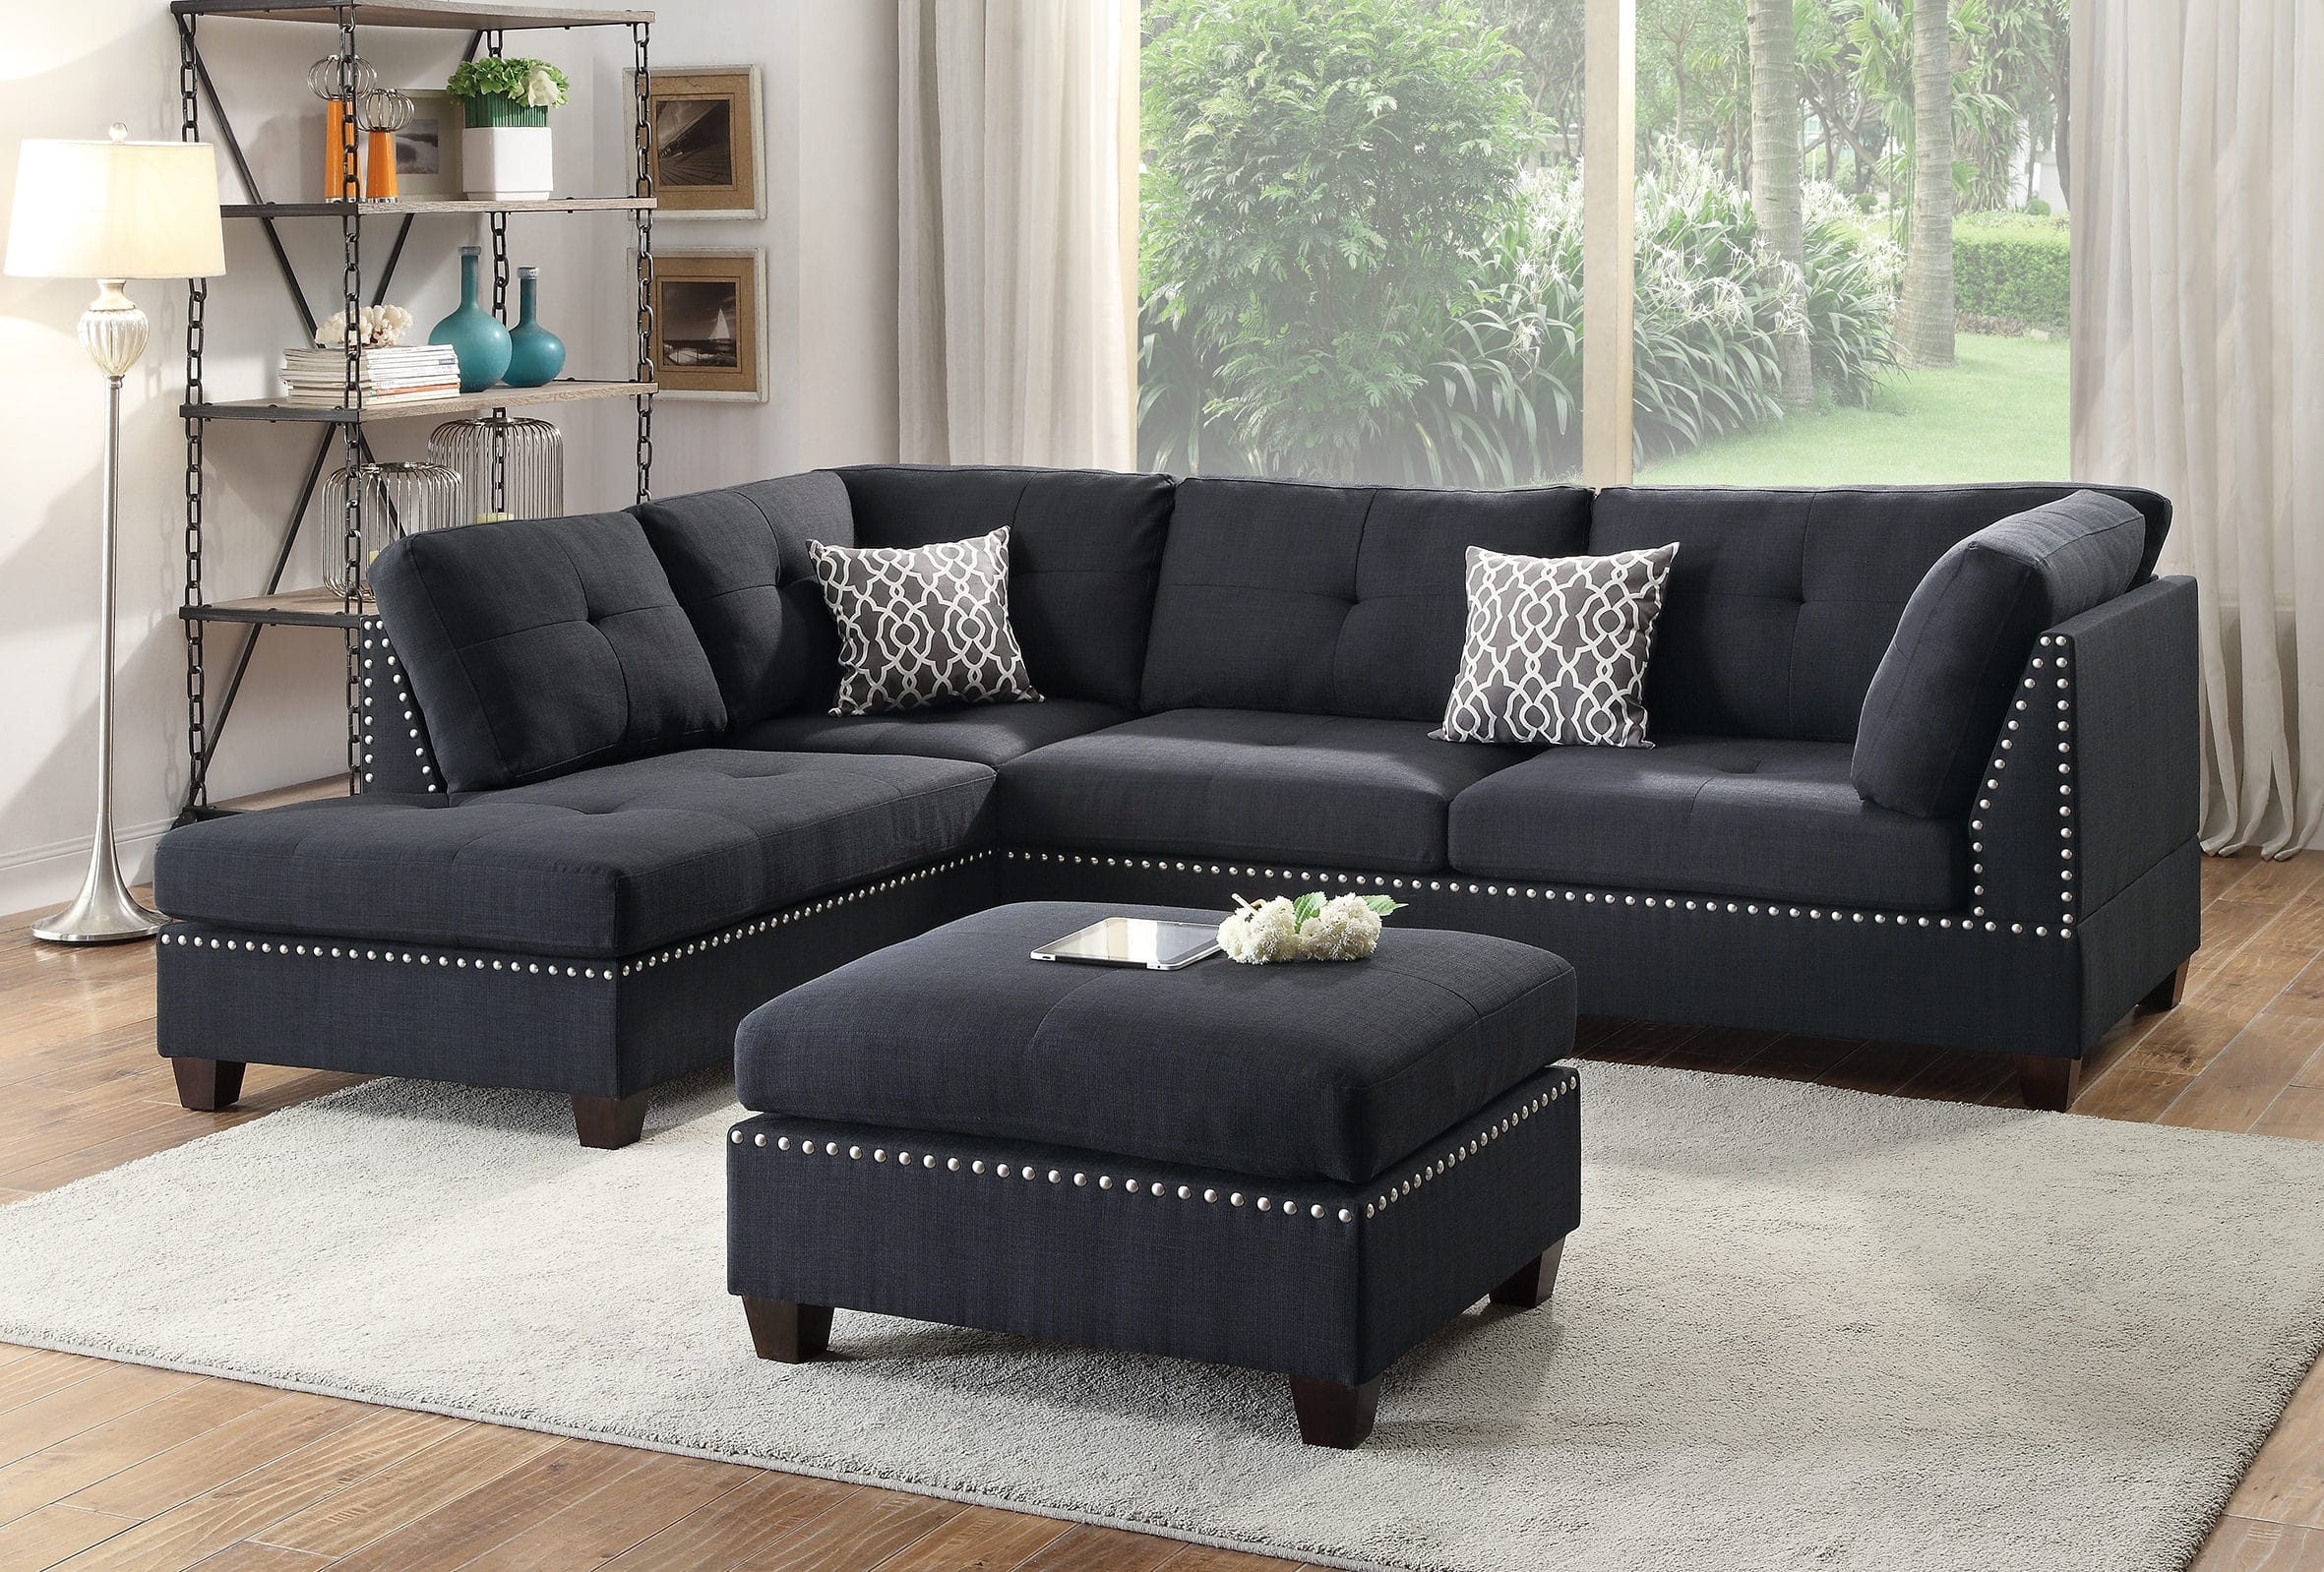 F6974 Black 3 Pcs Sectional Sofa Set by Poundex